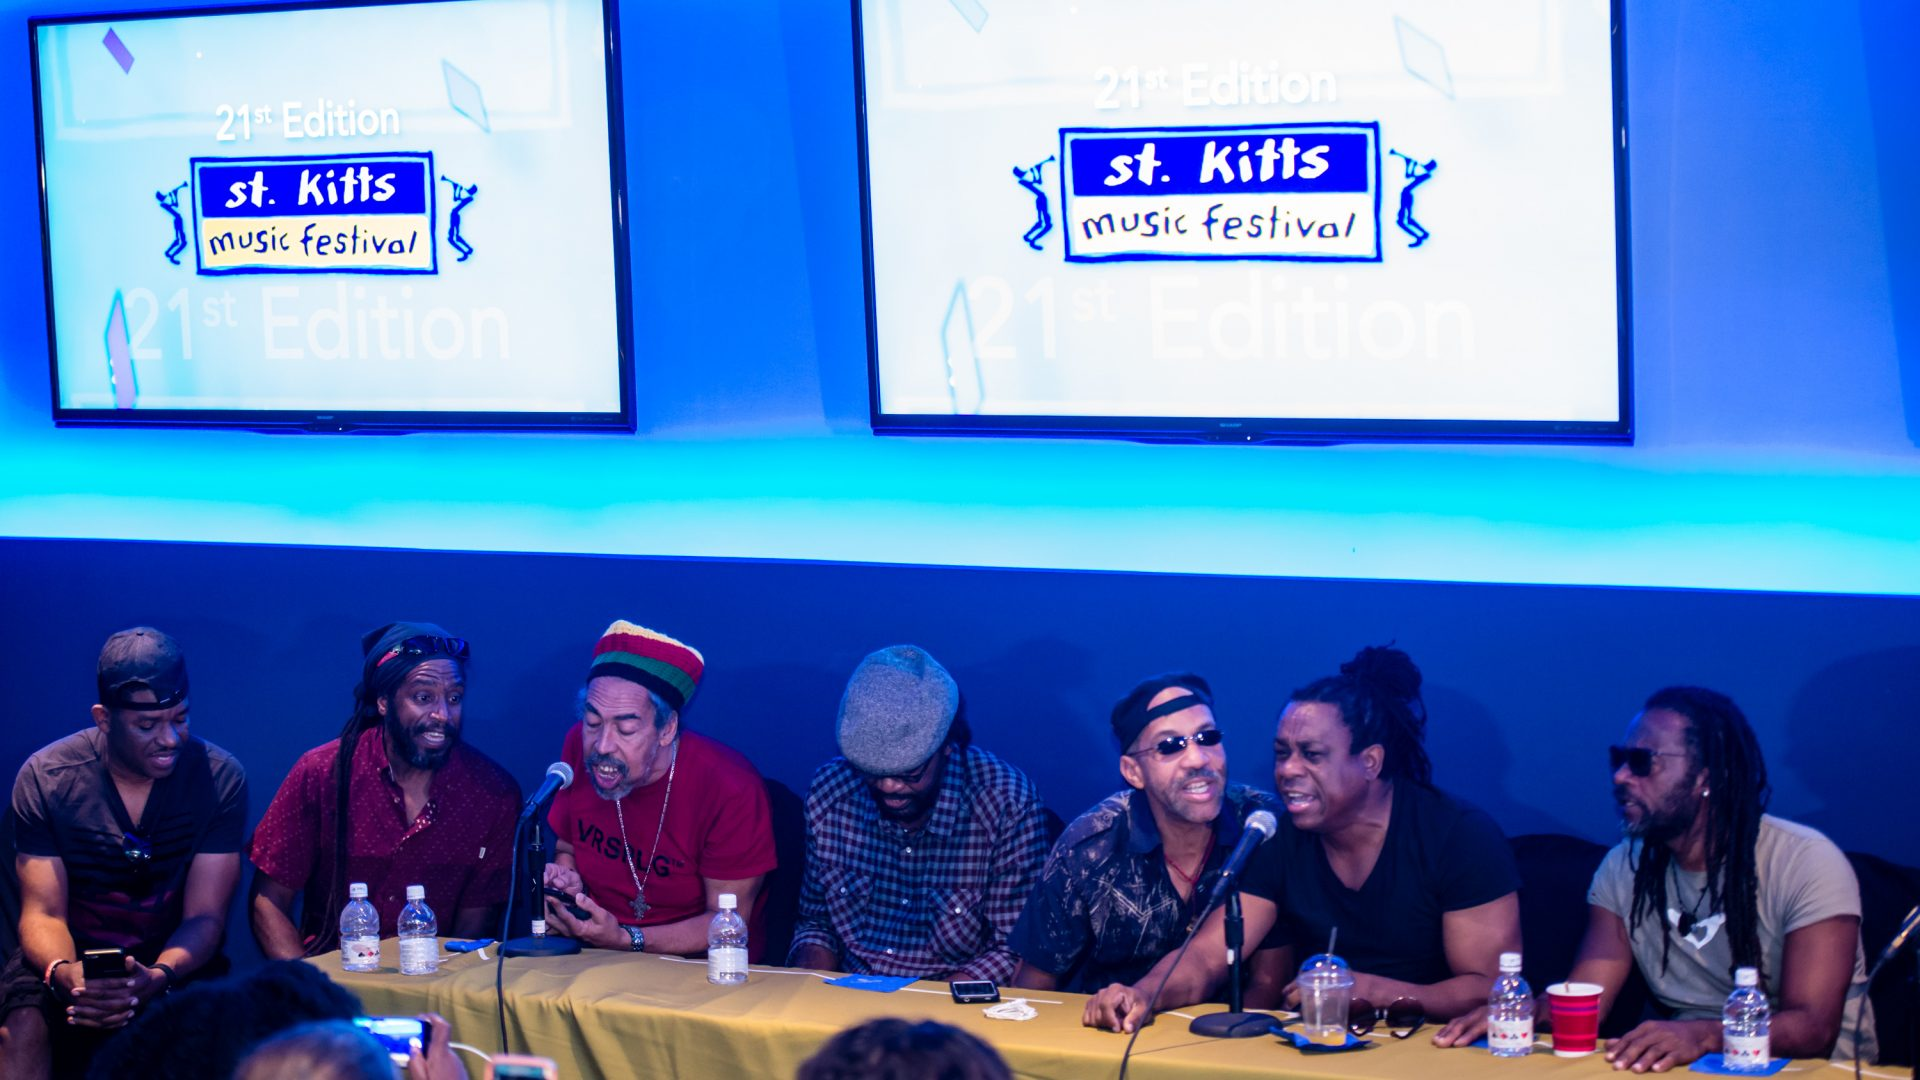 St. Kitts Music Festival - Friday Press Conference, June 23 2017